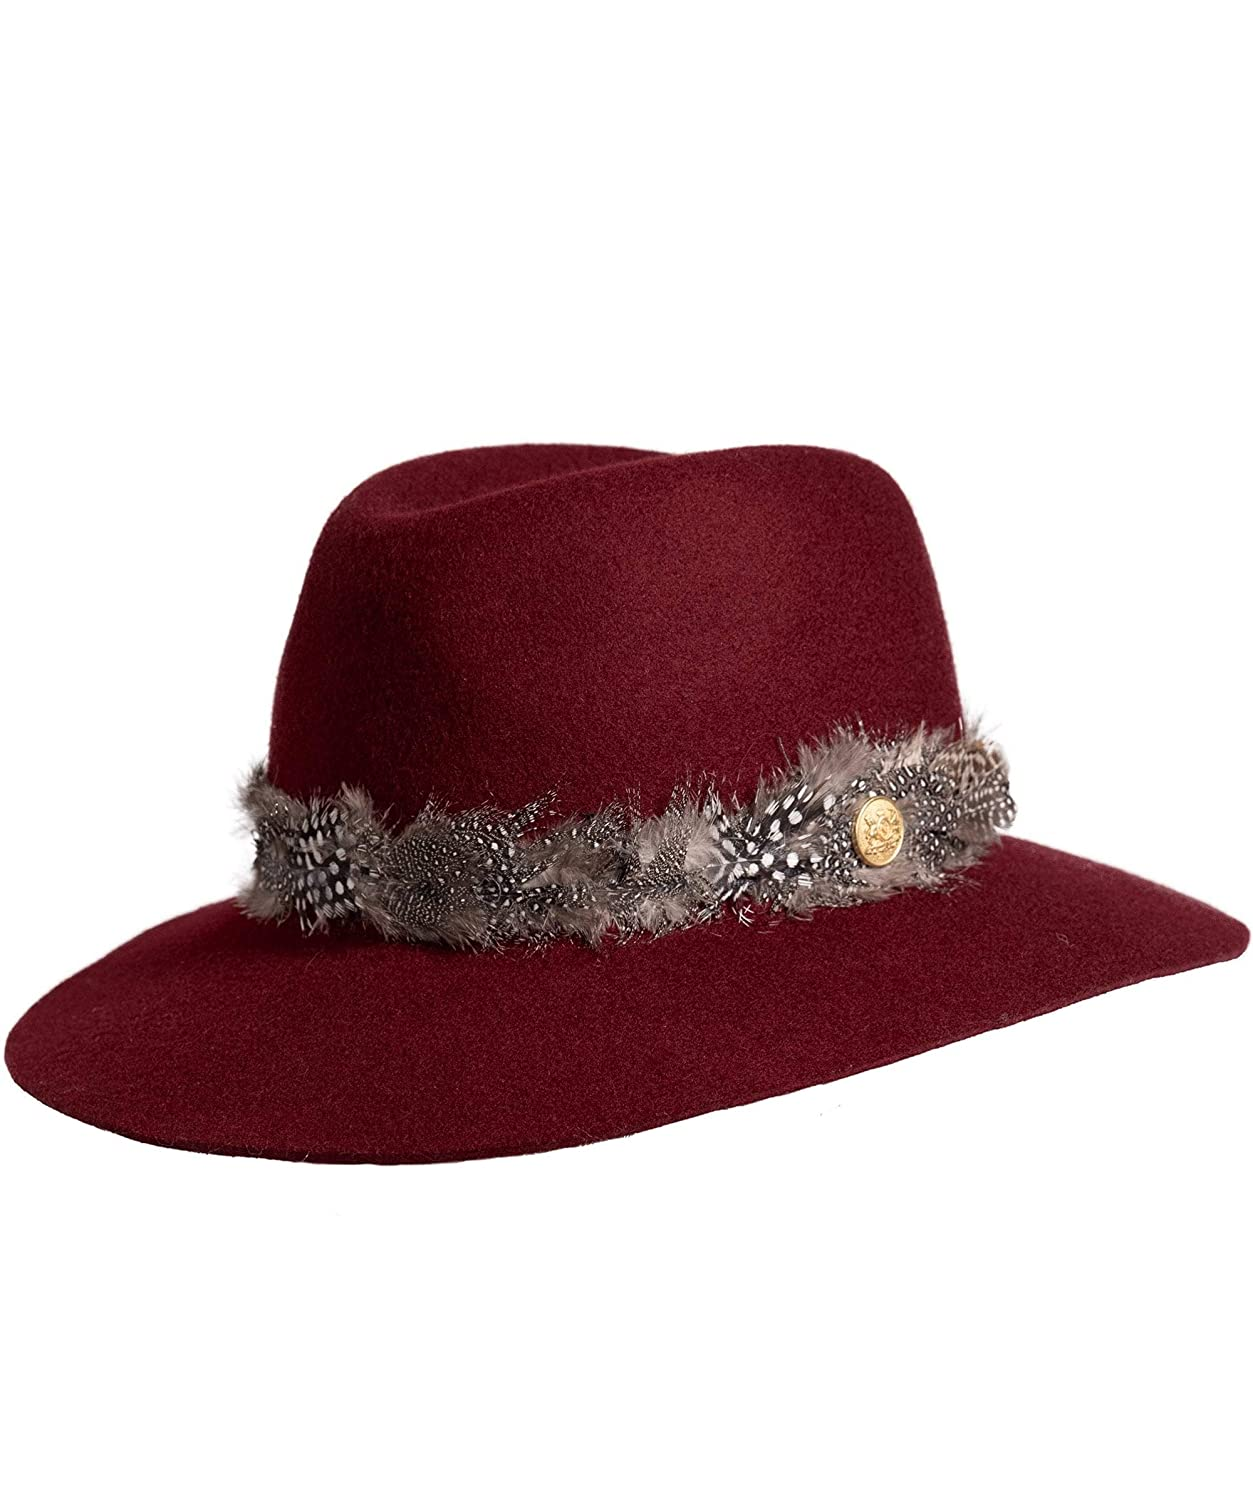 2a6617b1e Holland Cooper Women's Grayson Trilby Hat with Feather Band Purple ...